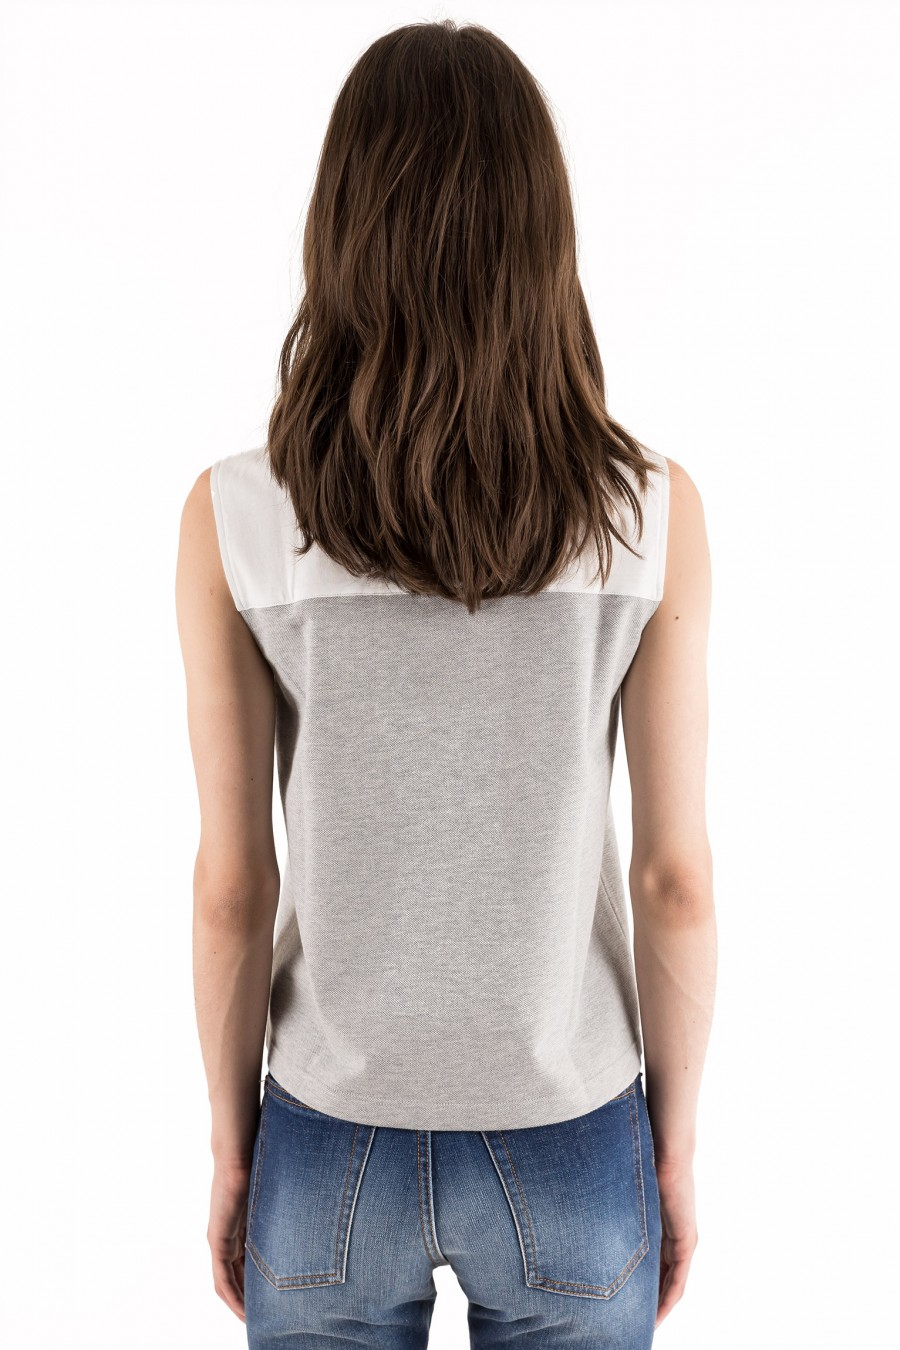 White and grey sleeveless top